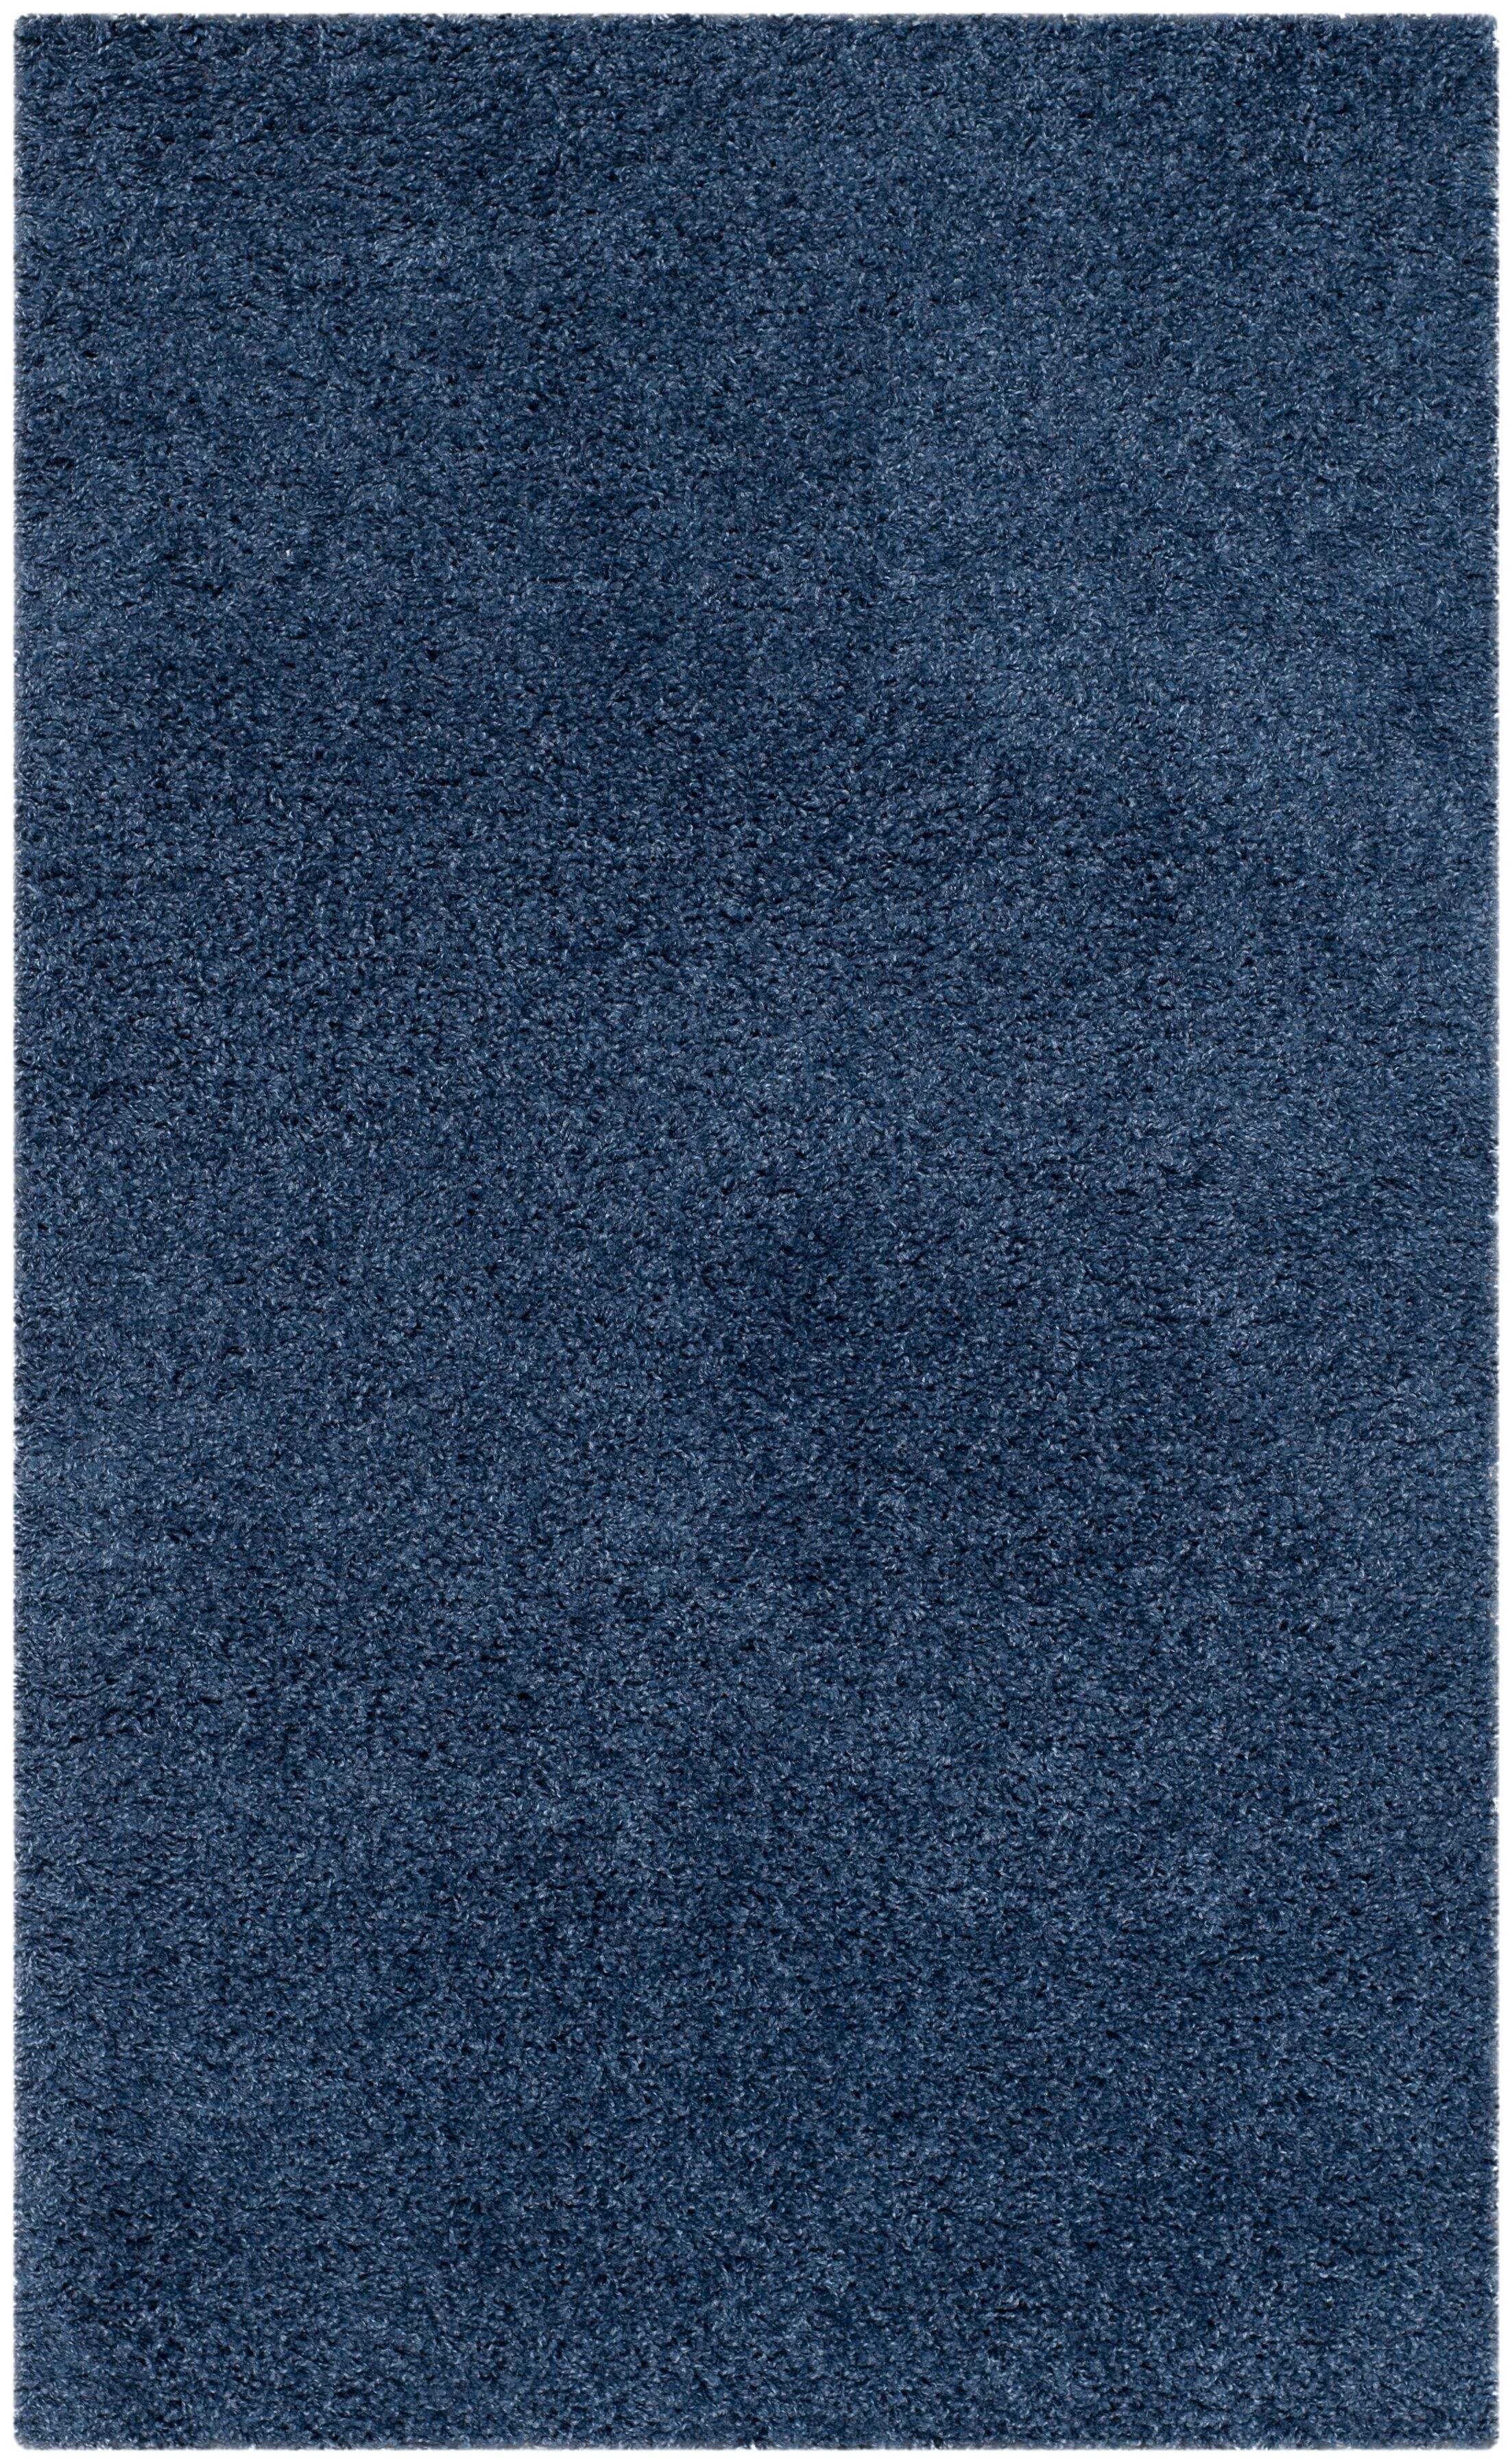 Van Horne Blue Area Rug Rug Size: Rectangle 6'7